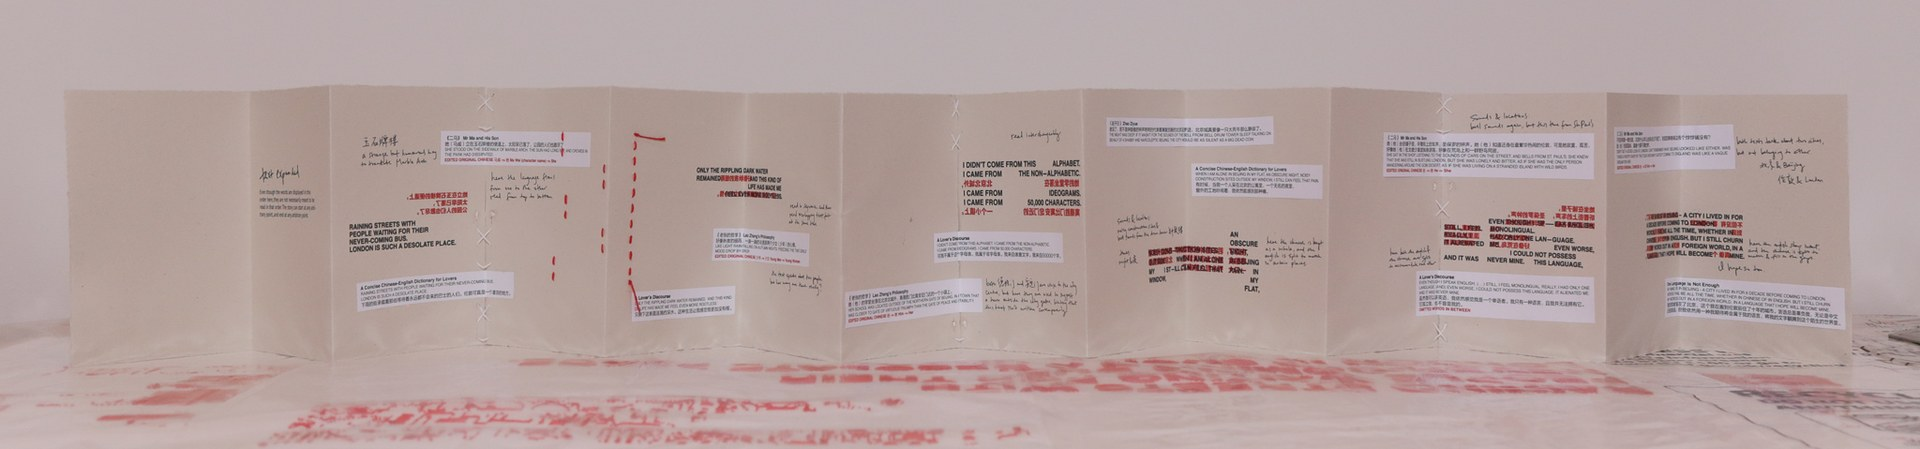 physical copy of booklet, other side with text translations